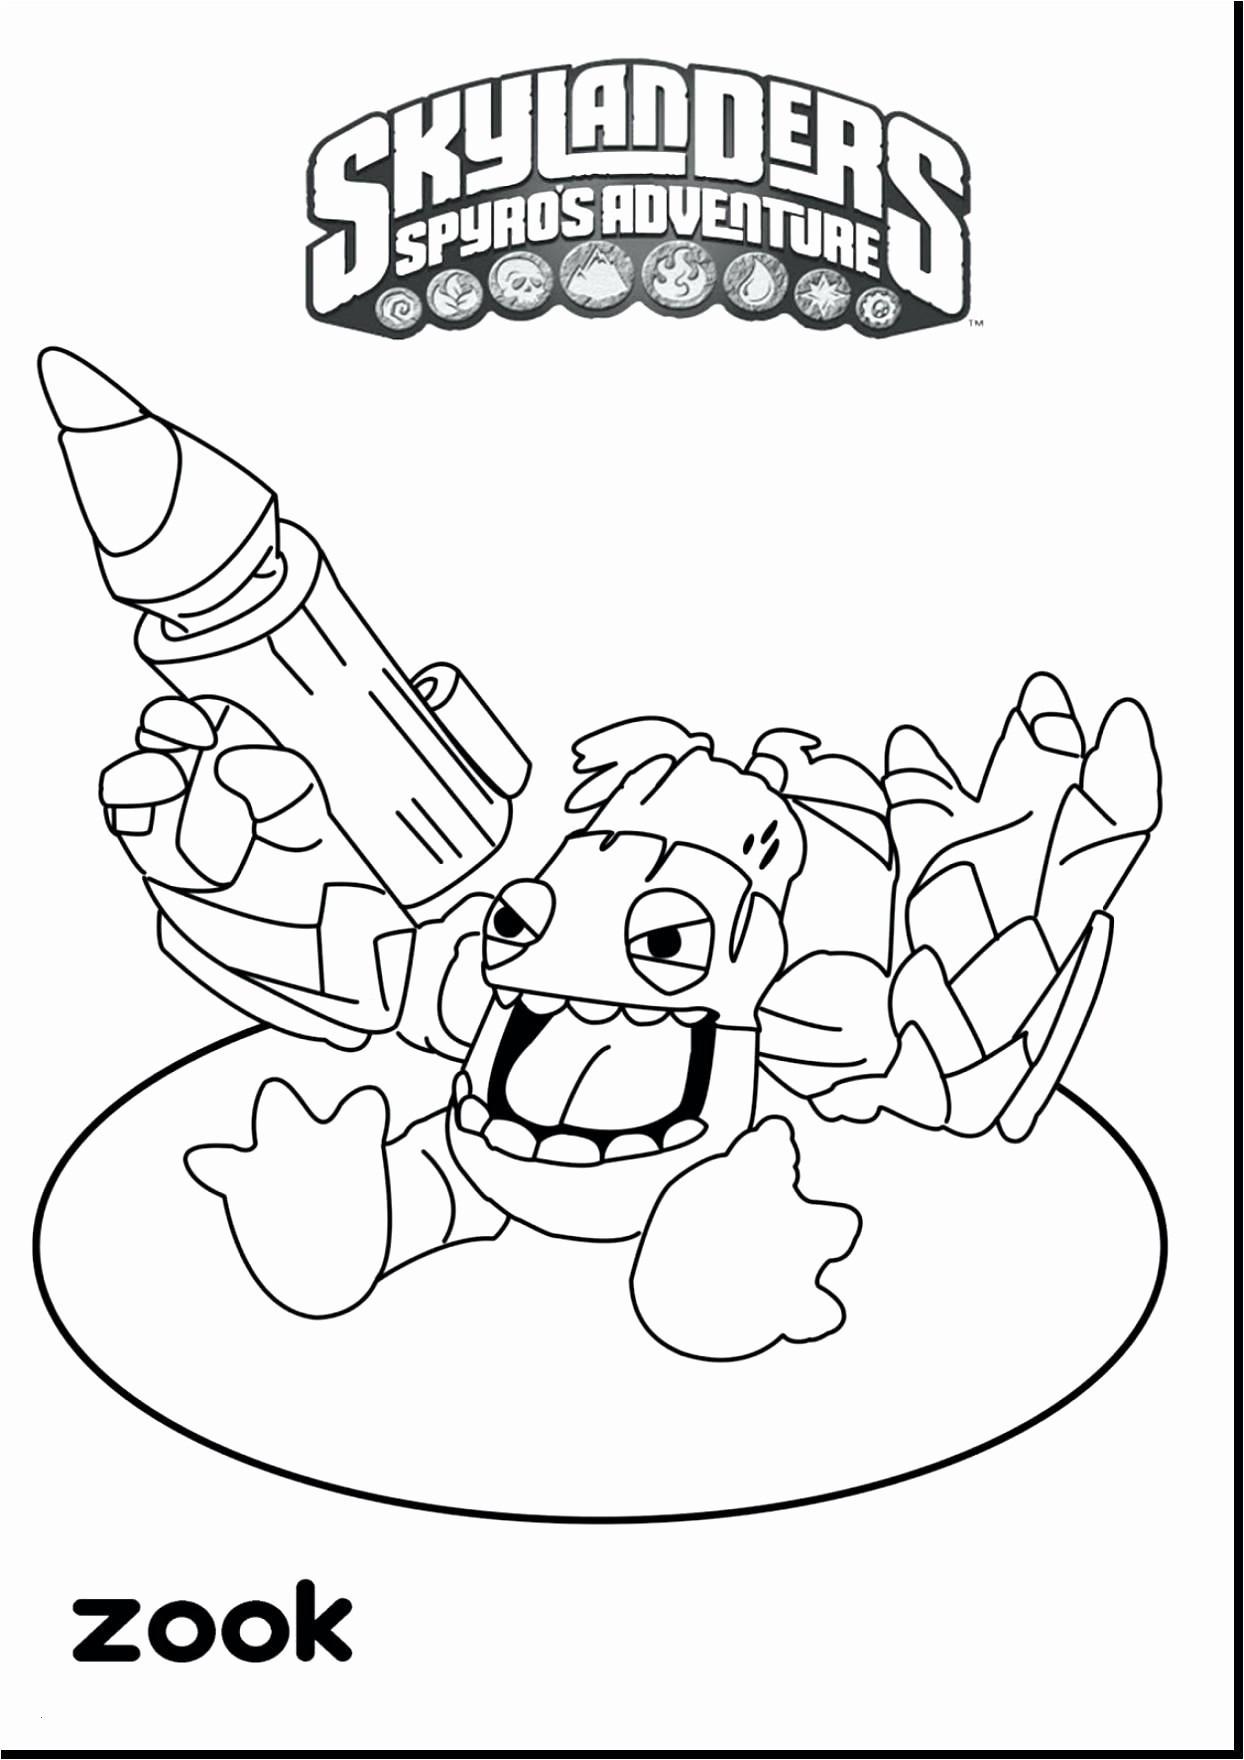 Mulan Coloring Pages  Collection 3e - To print for your project